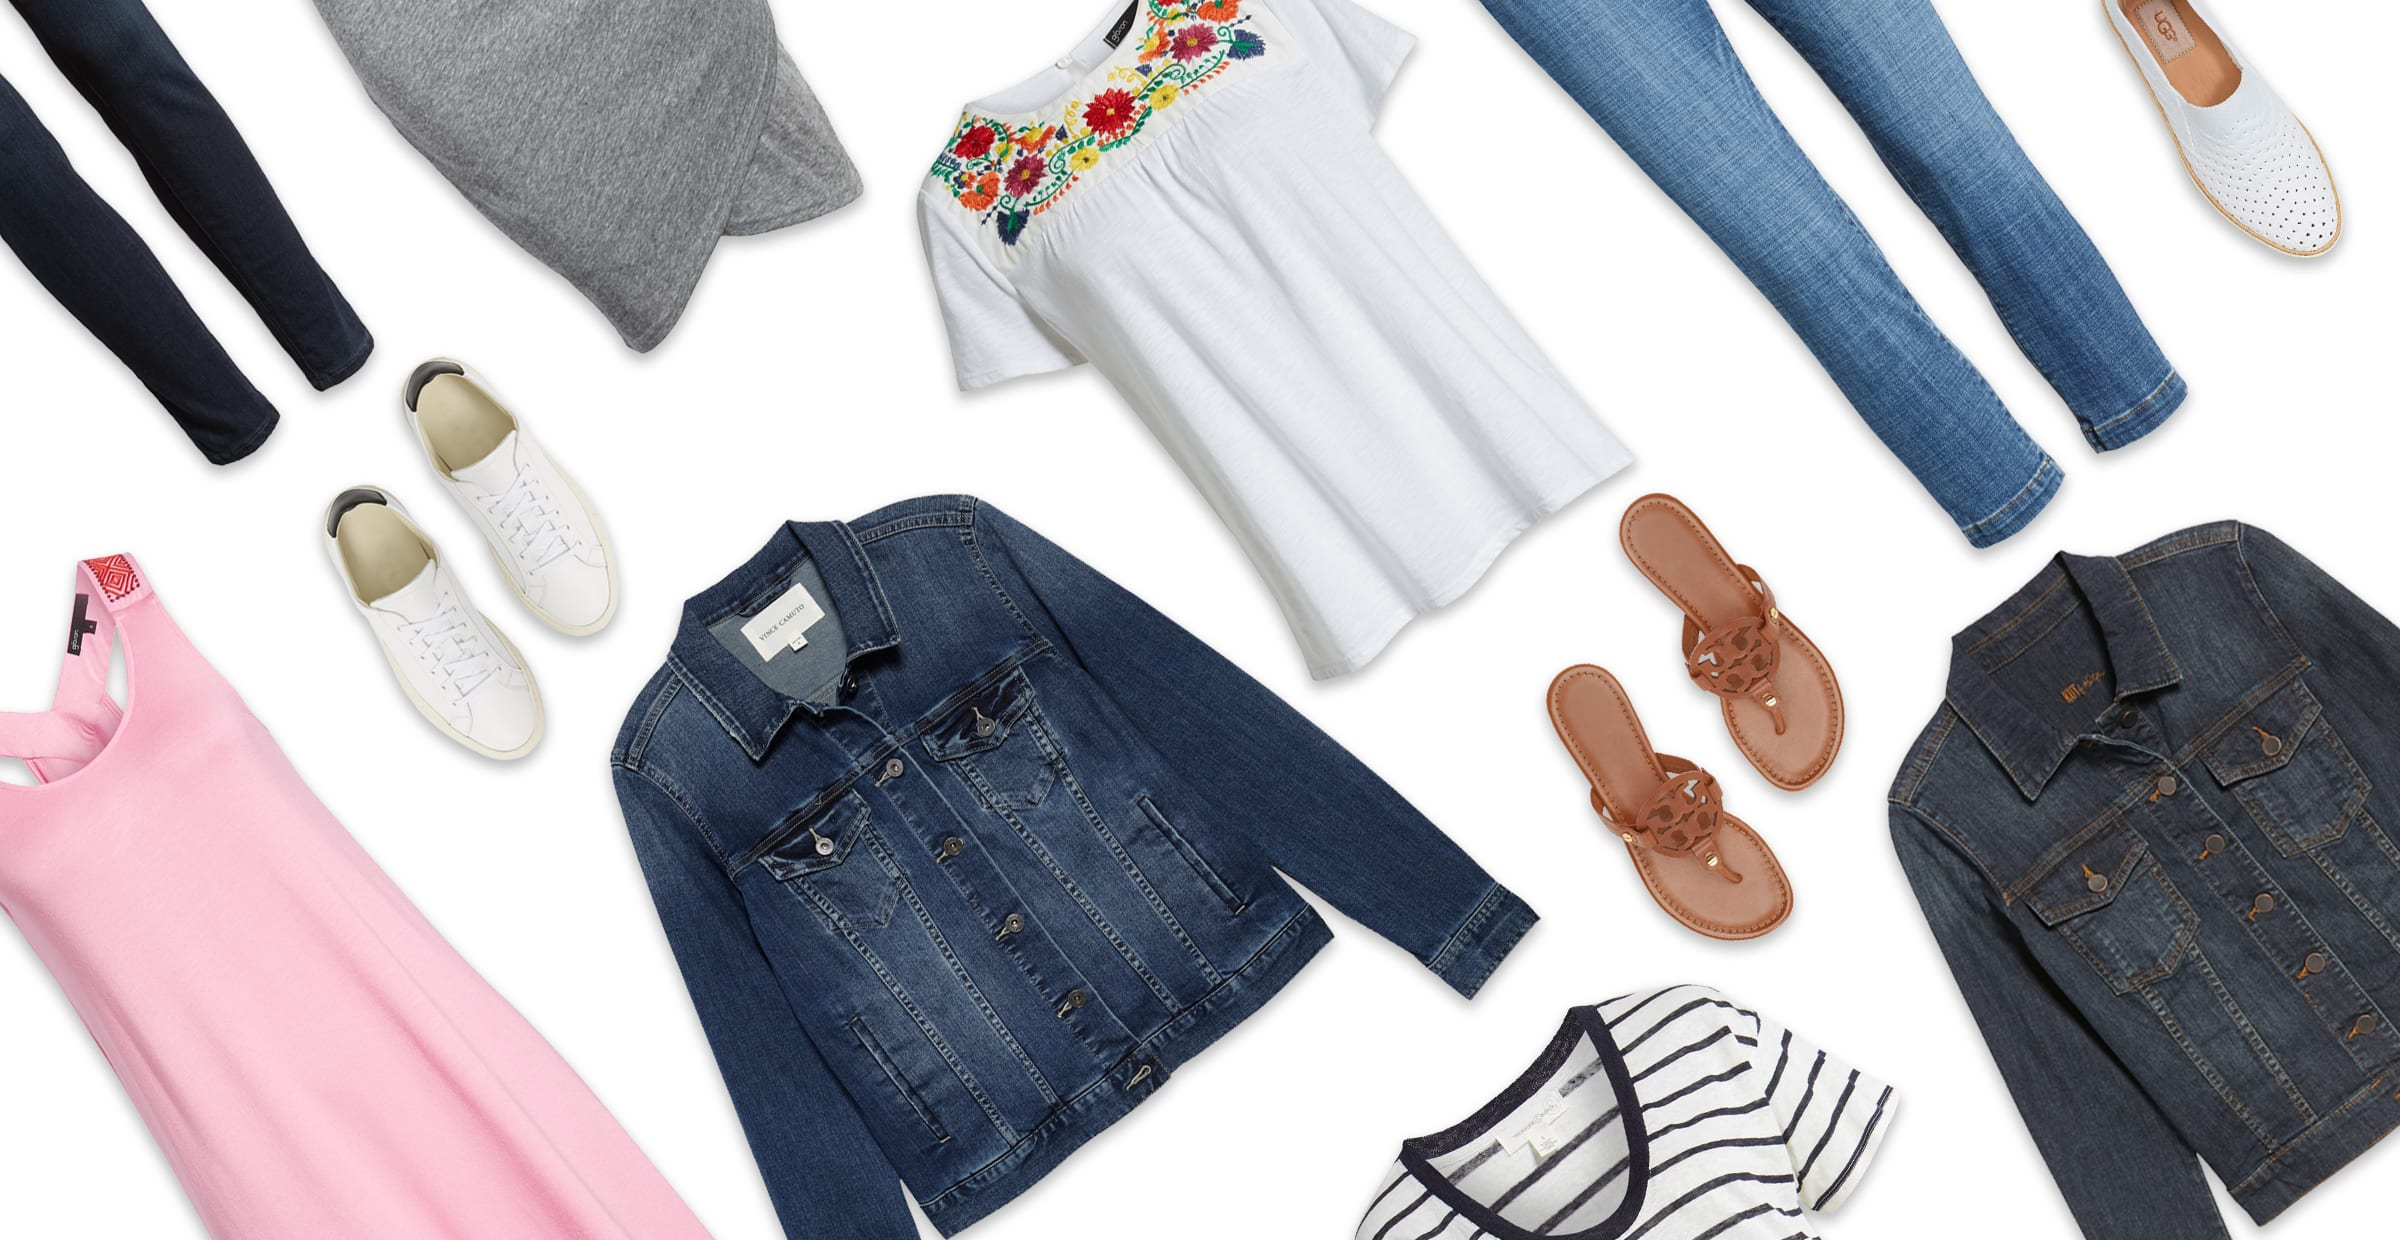 Women's summer to fall clothing